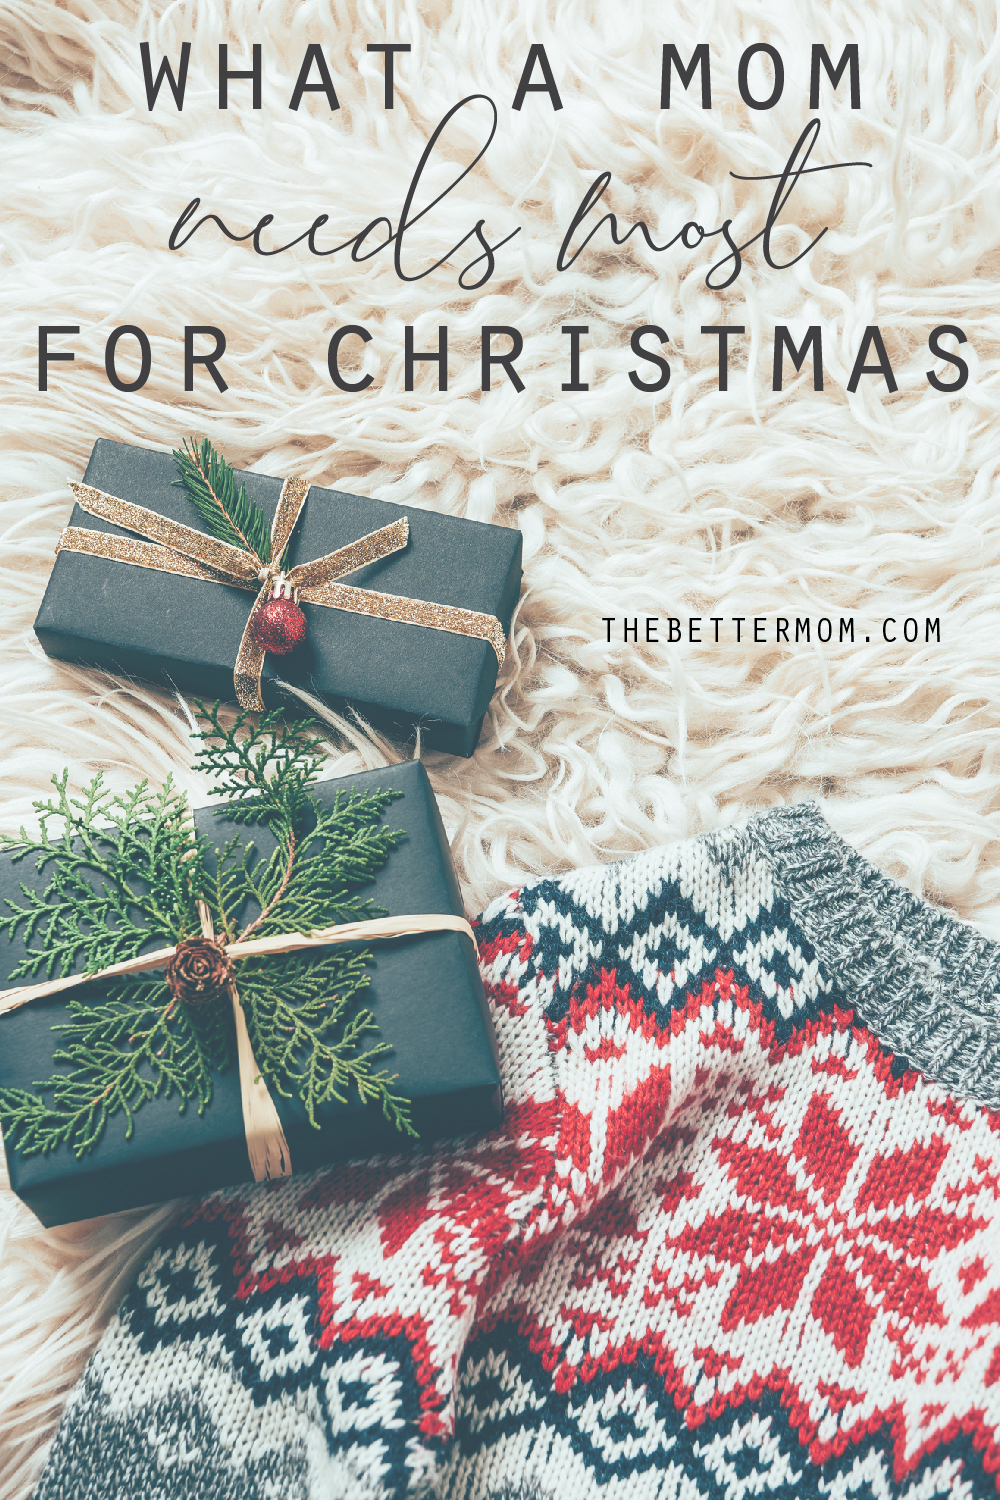 Christmas season in a mom's world is full of interruptions and last minute responsibilities (as well as those overfilling the calendar!) Before you get fully swept away, slow your heart here with us today. There is one thing you need this Christmas more than you know.